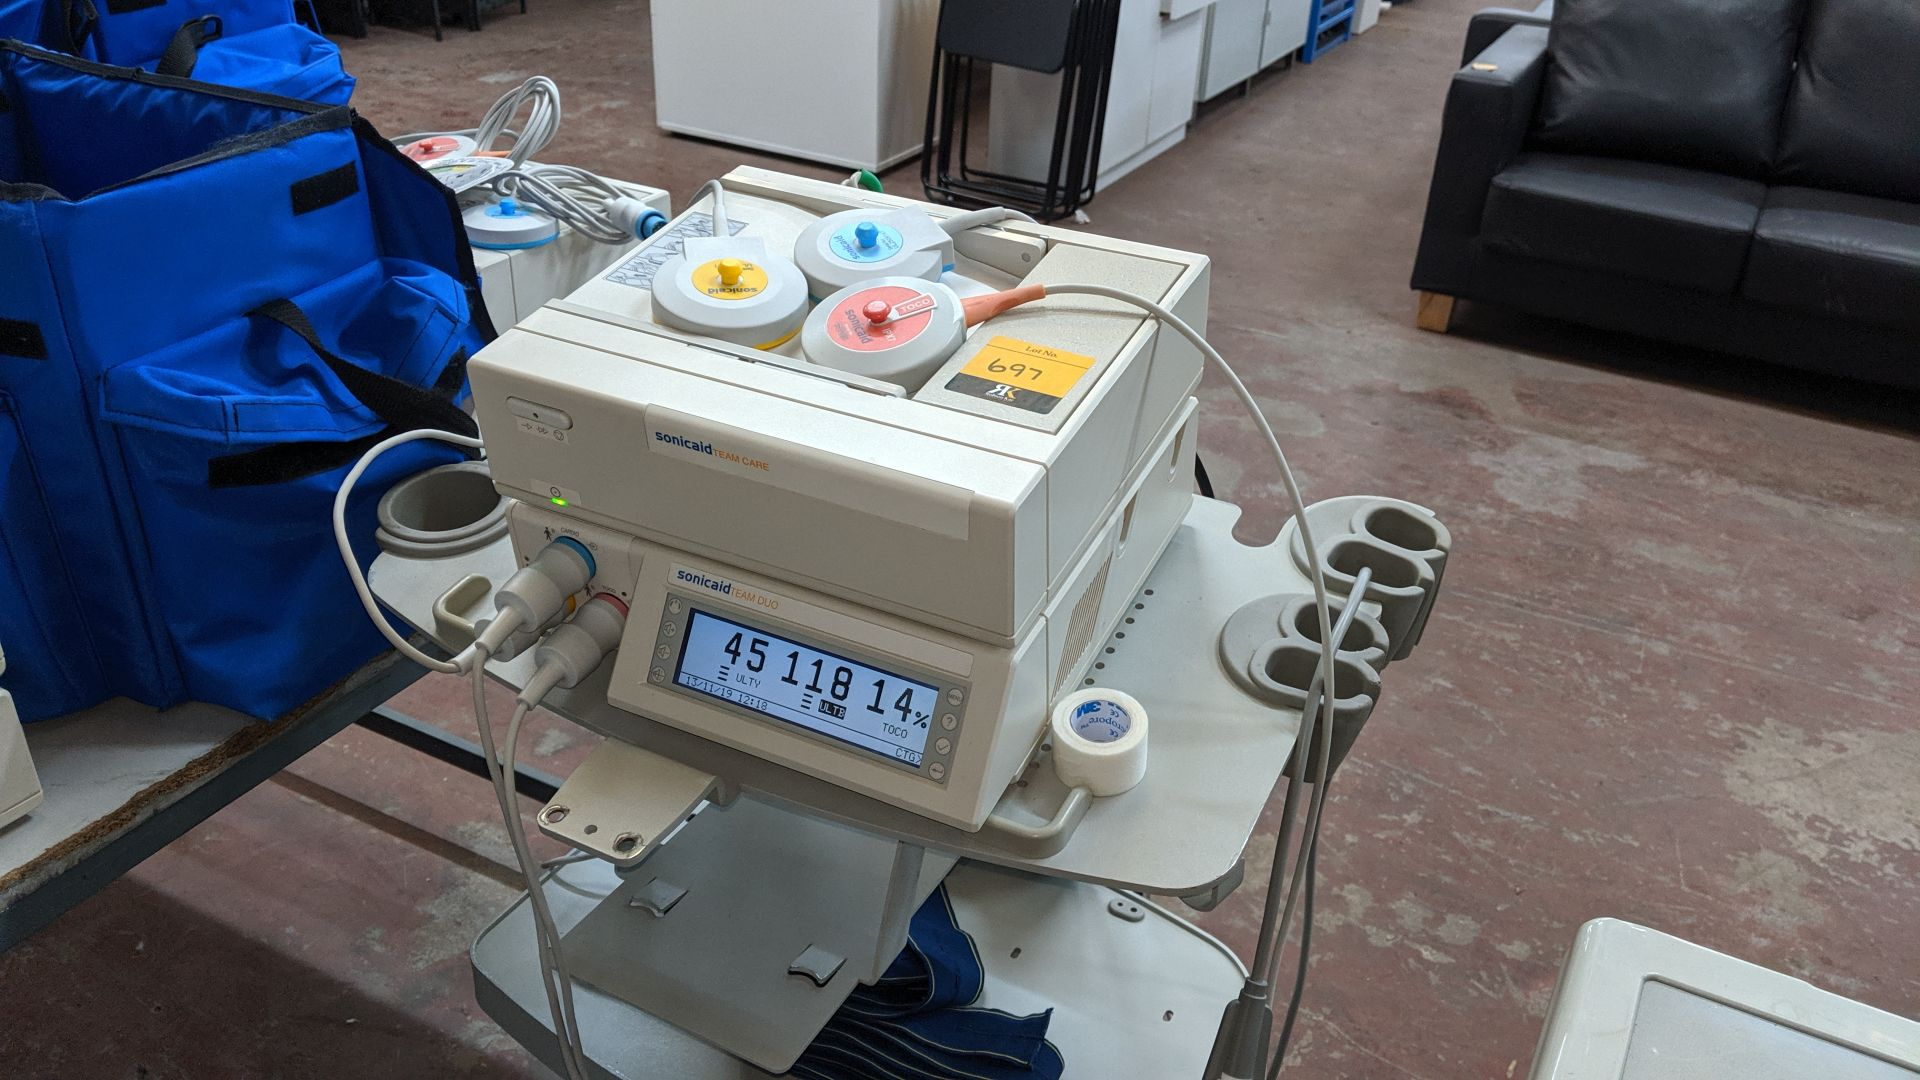 Lot 697 - Huntleigh Sonicaid Fetal scanning system comprising Team Duo & Team Care modules plus trolley, carry